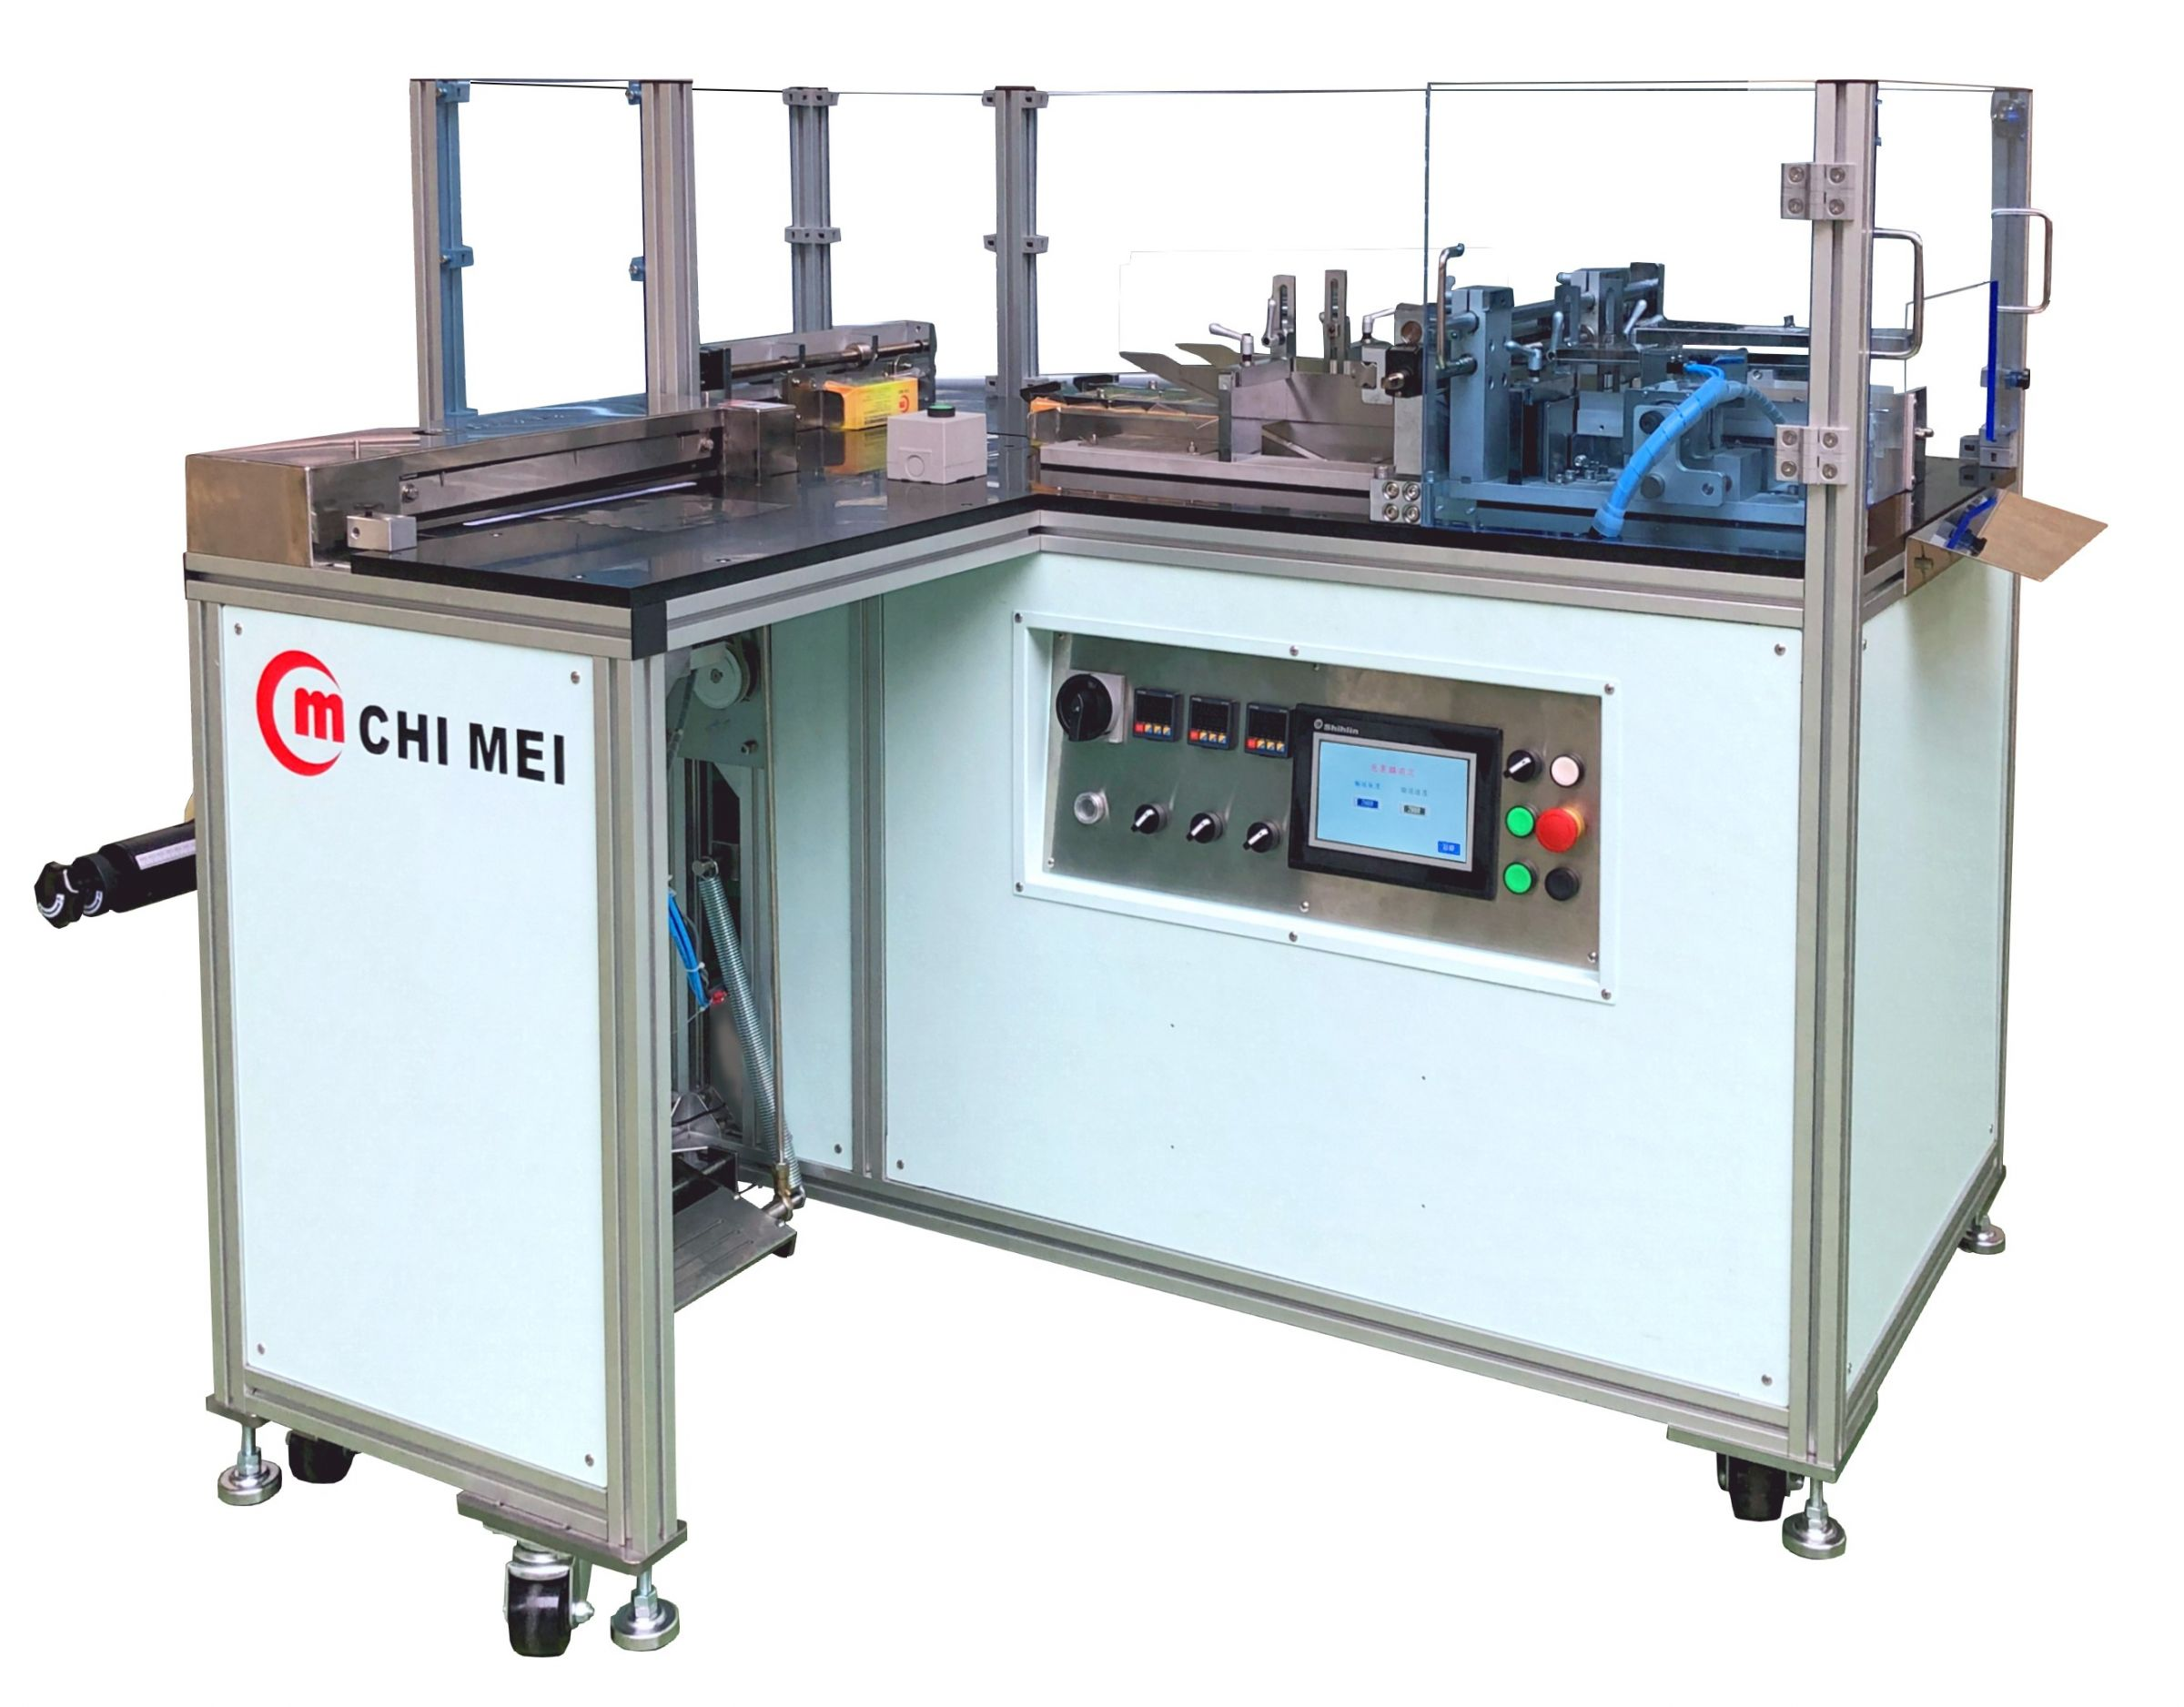 "Semi -Auto Overwrapping Machine - It is suitable for perfume box packing, and installed with ""Quicker size changeover system"", you can pack different size of perfume boxes by same one machine. Semi-automatic over wrapping machine、overwrapping machine、cellophane machine、cigarette packing machine、Tobacco packing machine、box packing machine、perfume box packing machine、shrink packing machine."